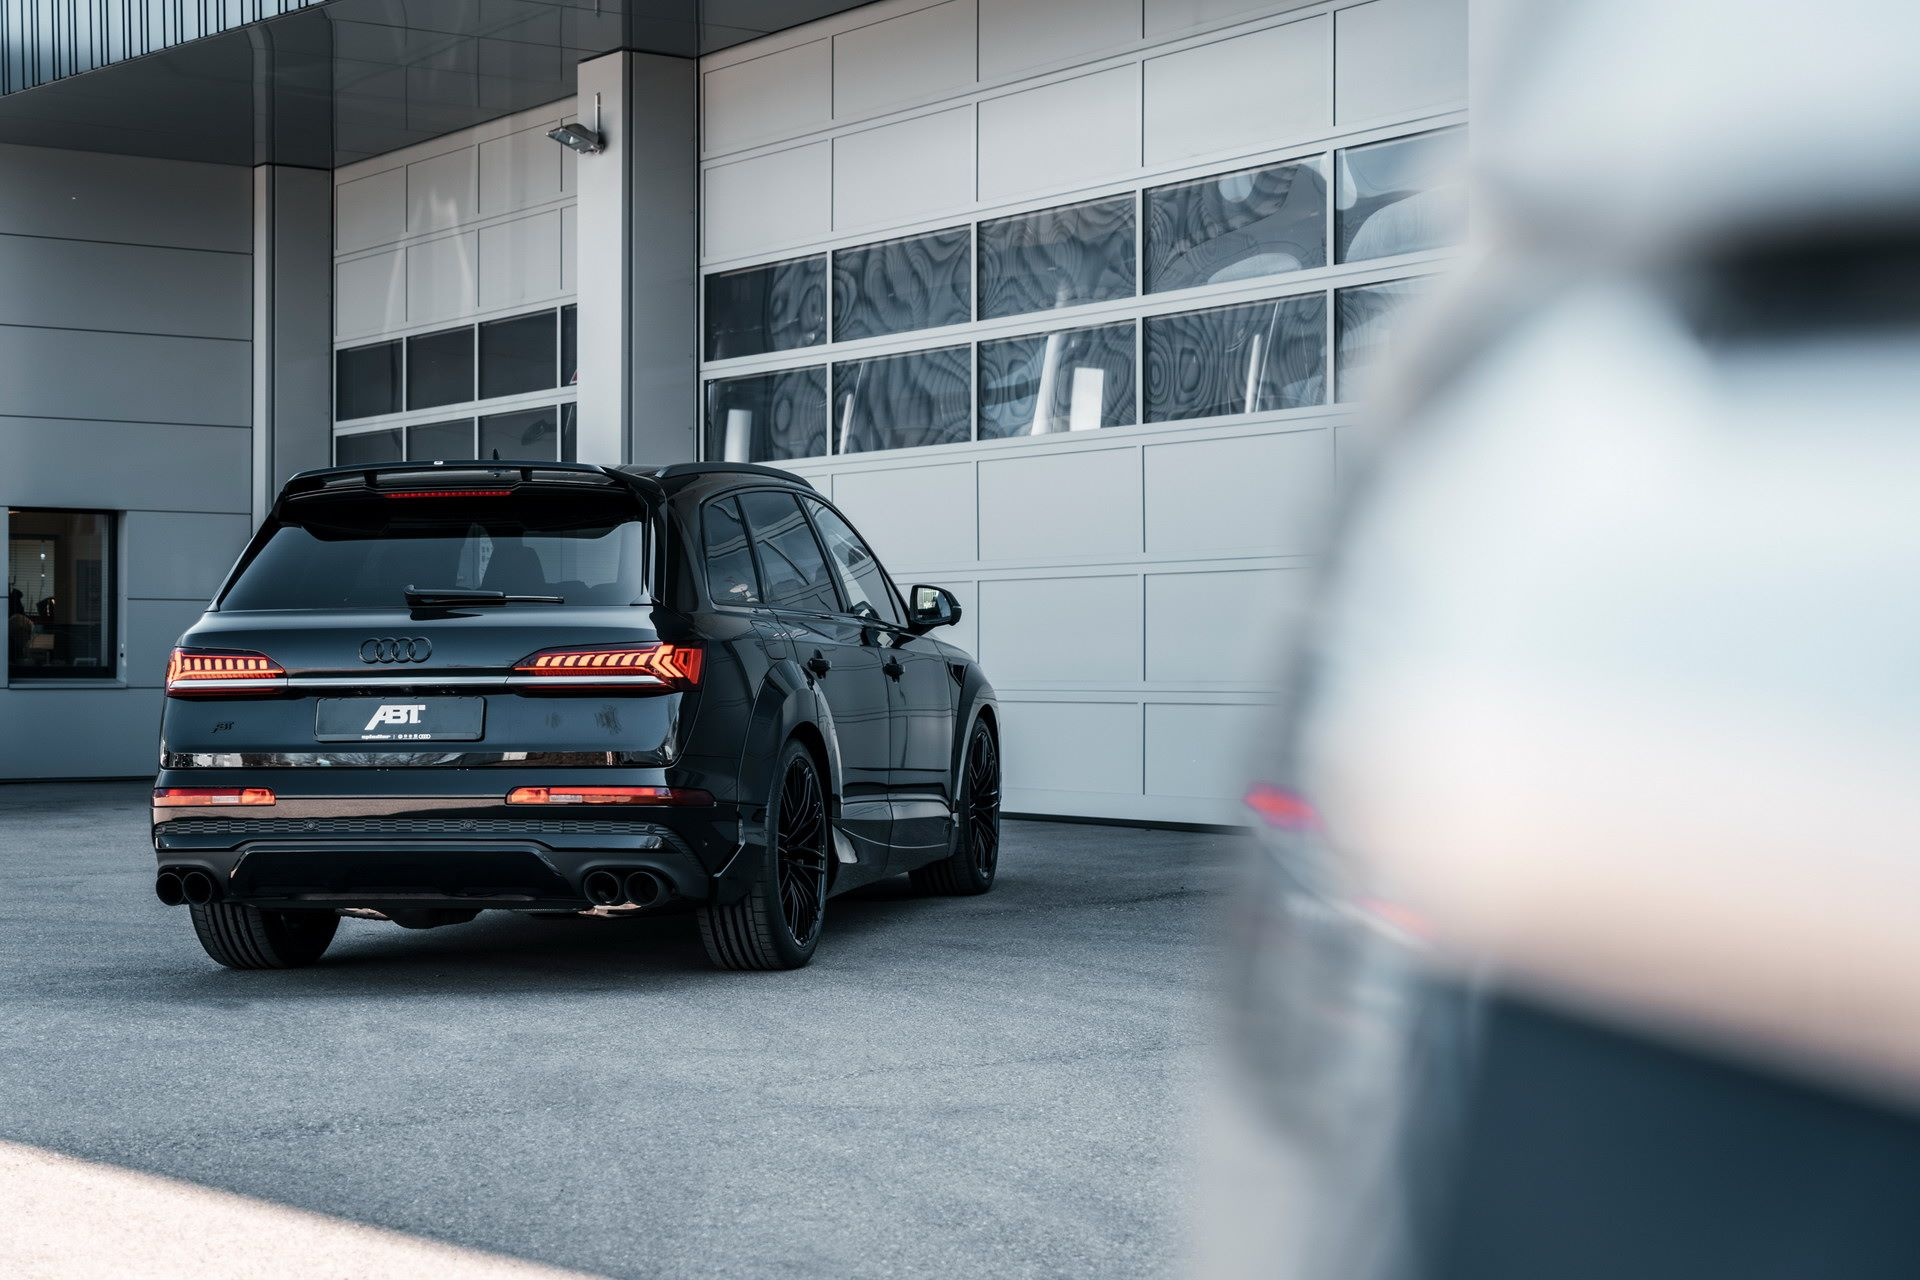 Audi-SQ7-tuned-by-ABT-Sportsline-5